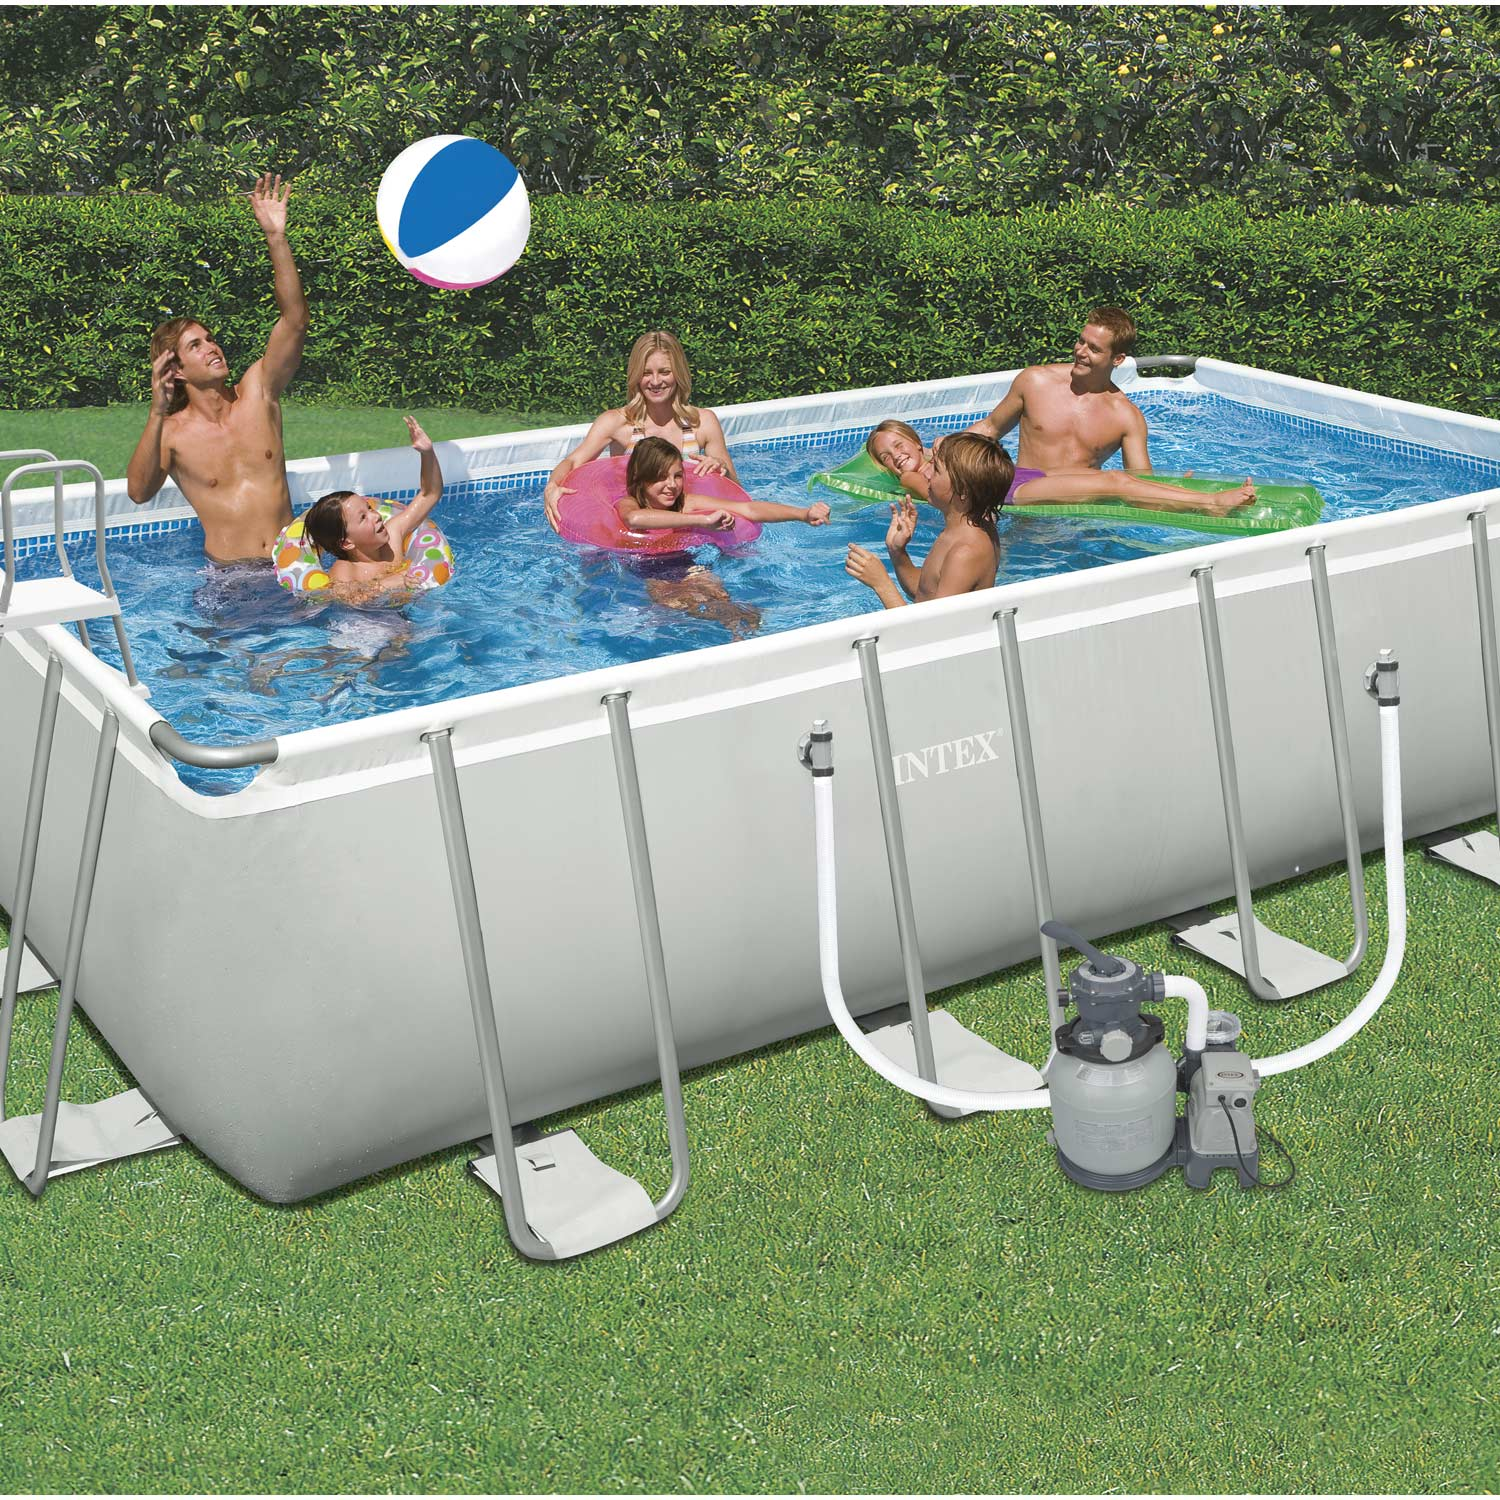 Piscine hors sol autoportante tubulaire intex l x l for Plongeoir piscine hors sol